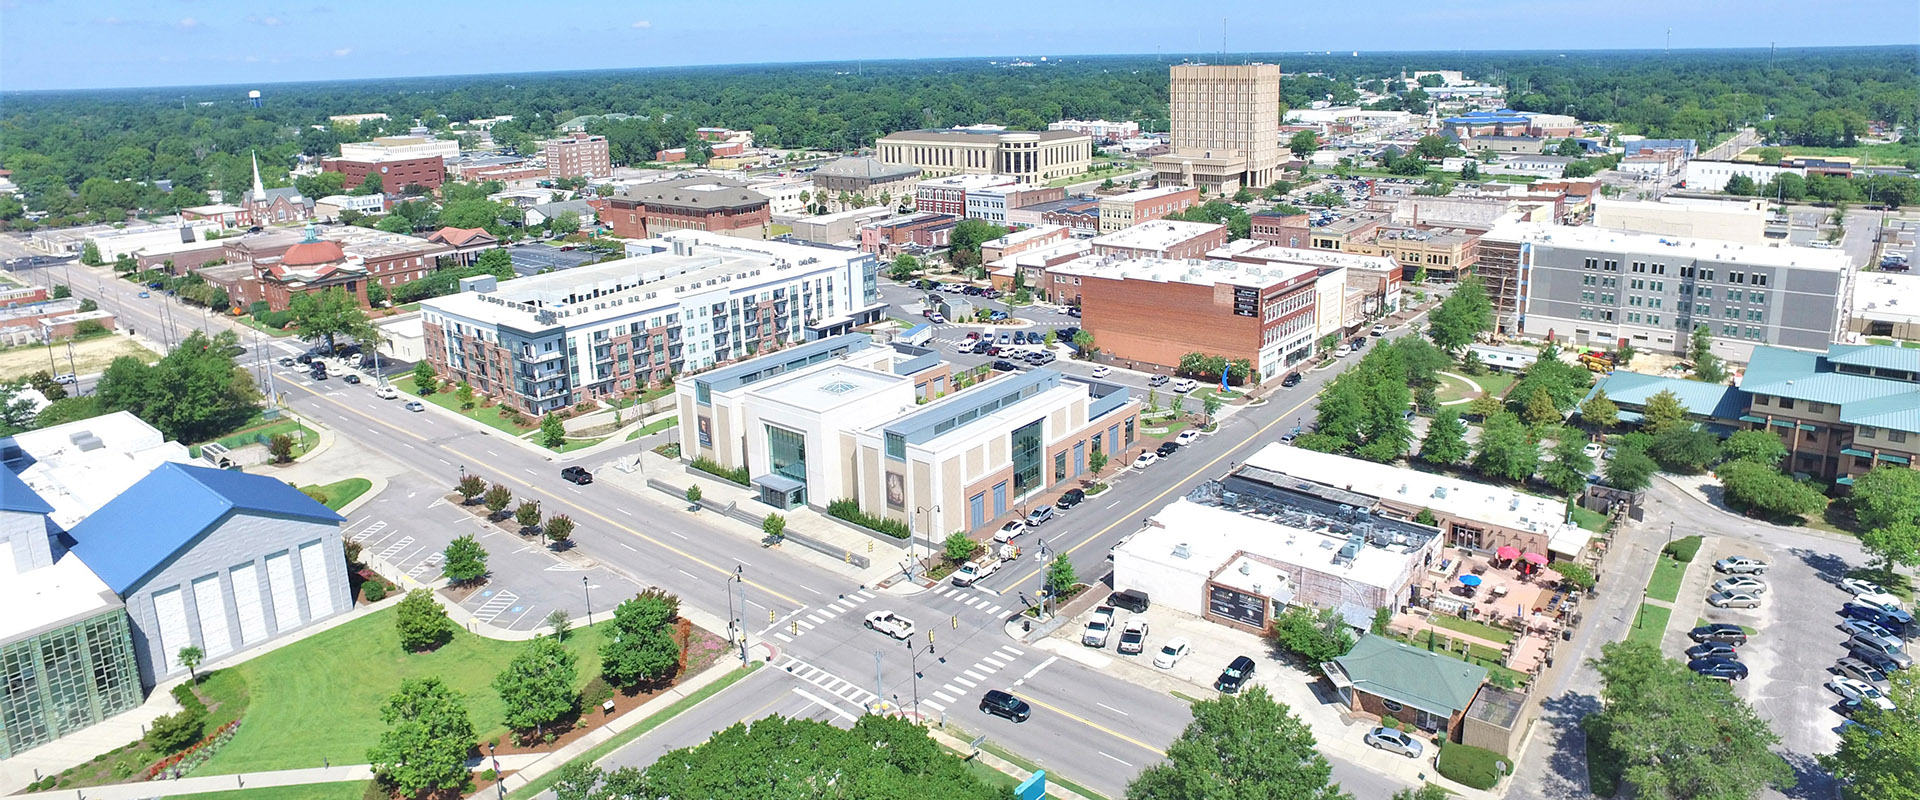 Commercial Real Estate   Property Management   Palmetto